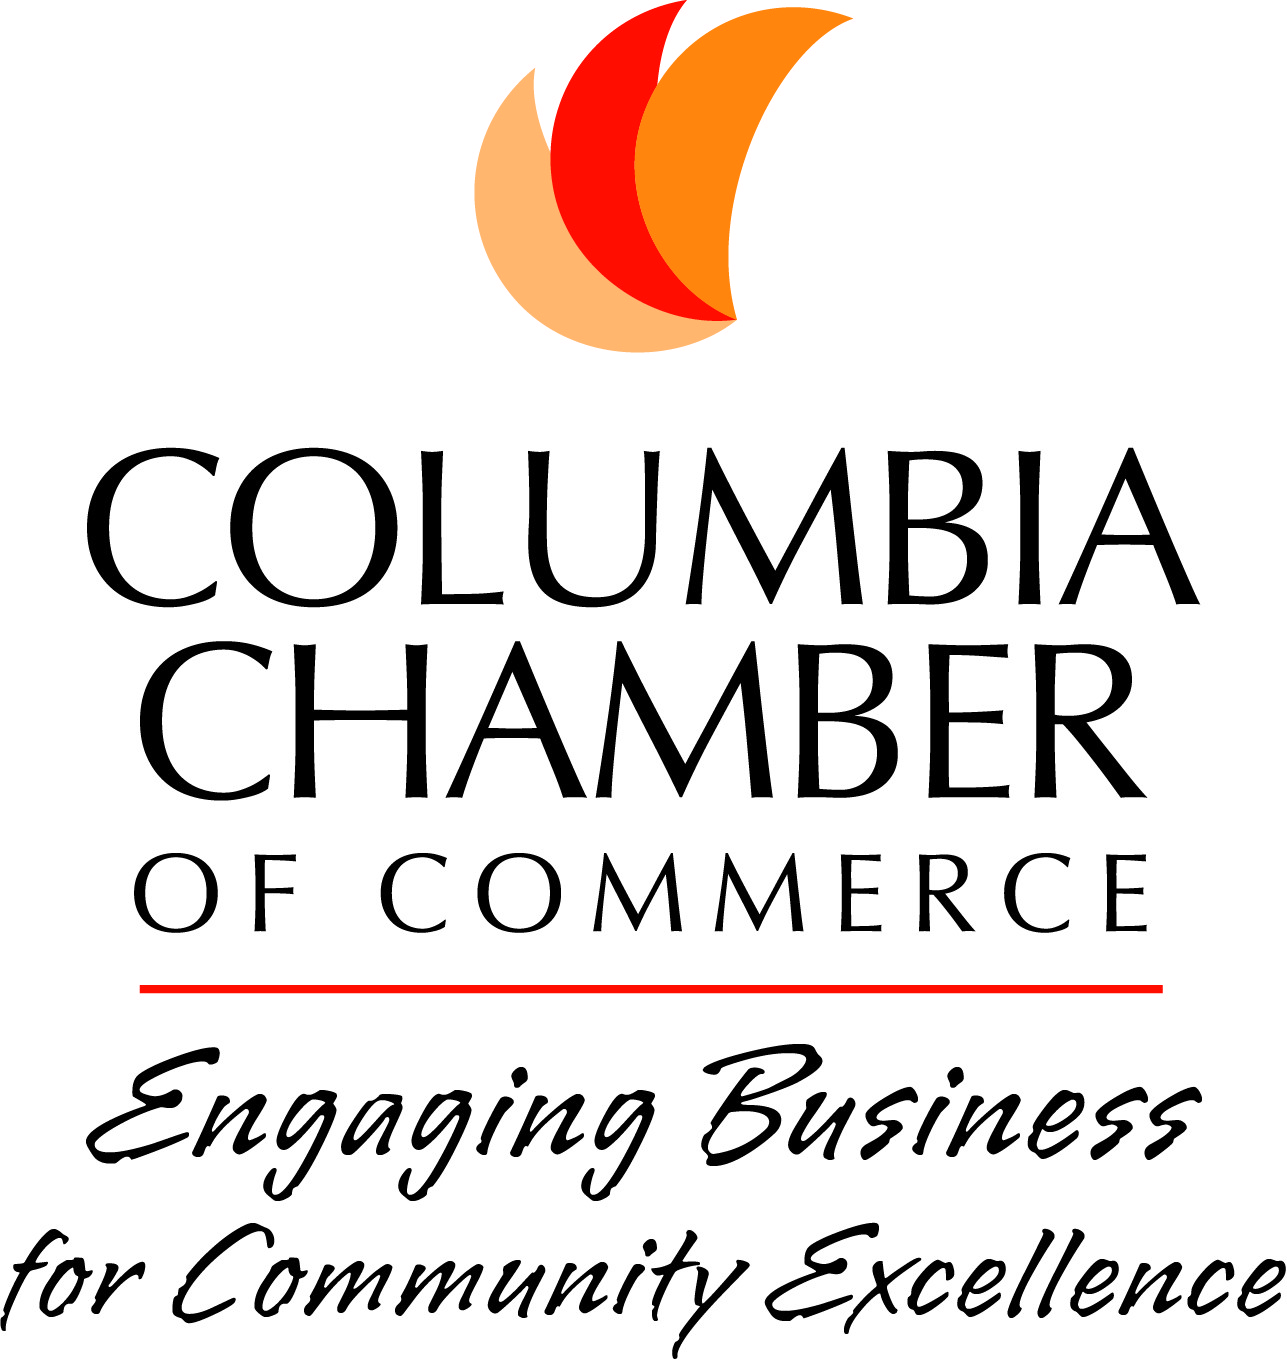 Columbia Chamber of Commerce